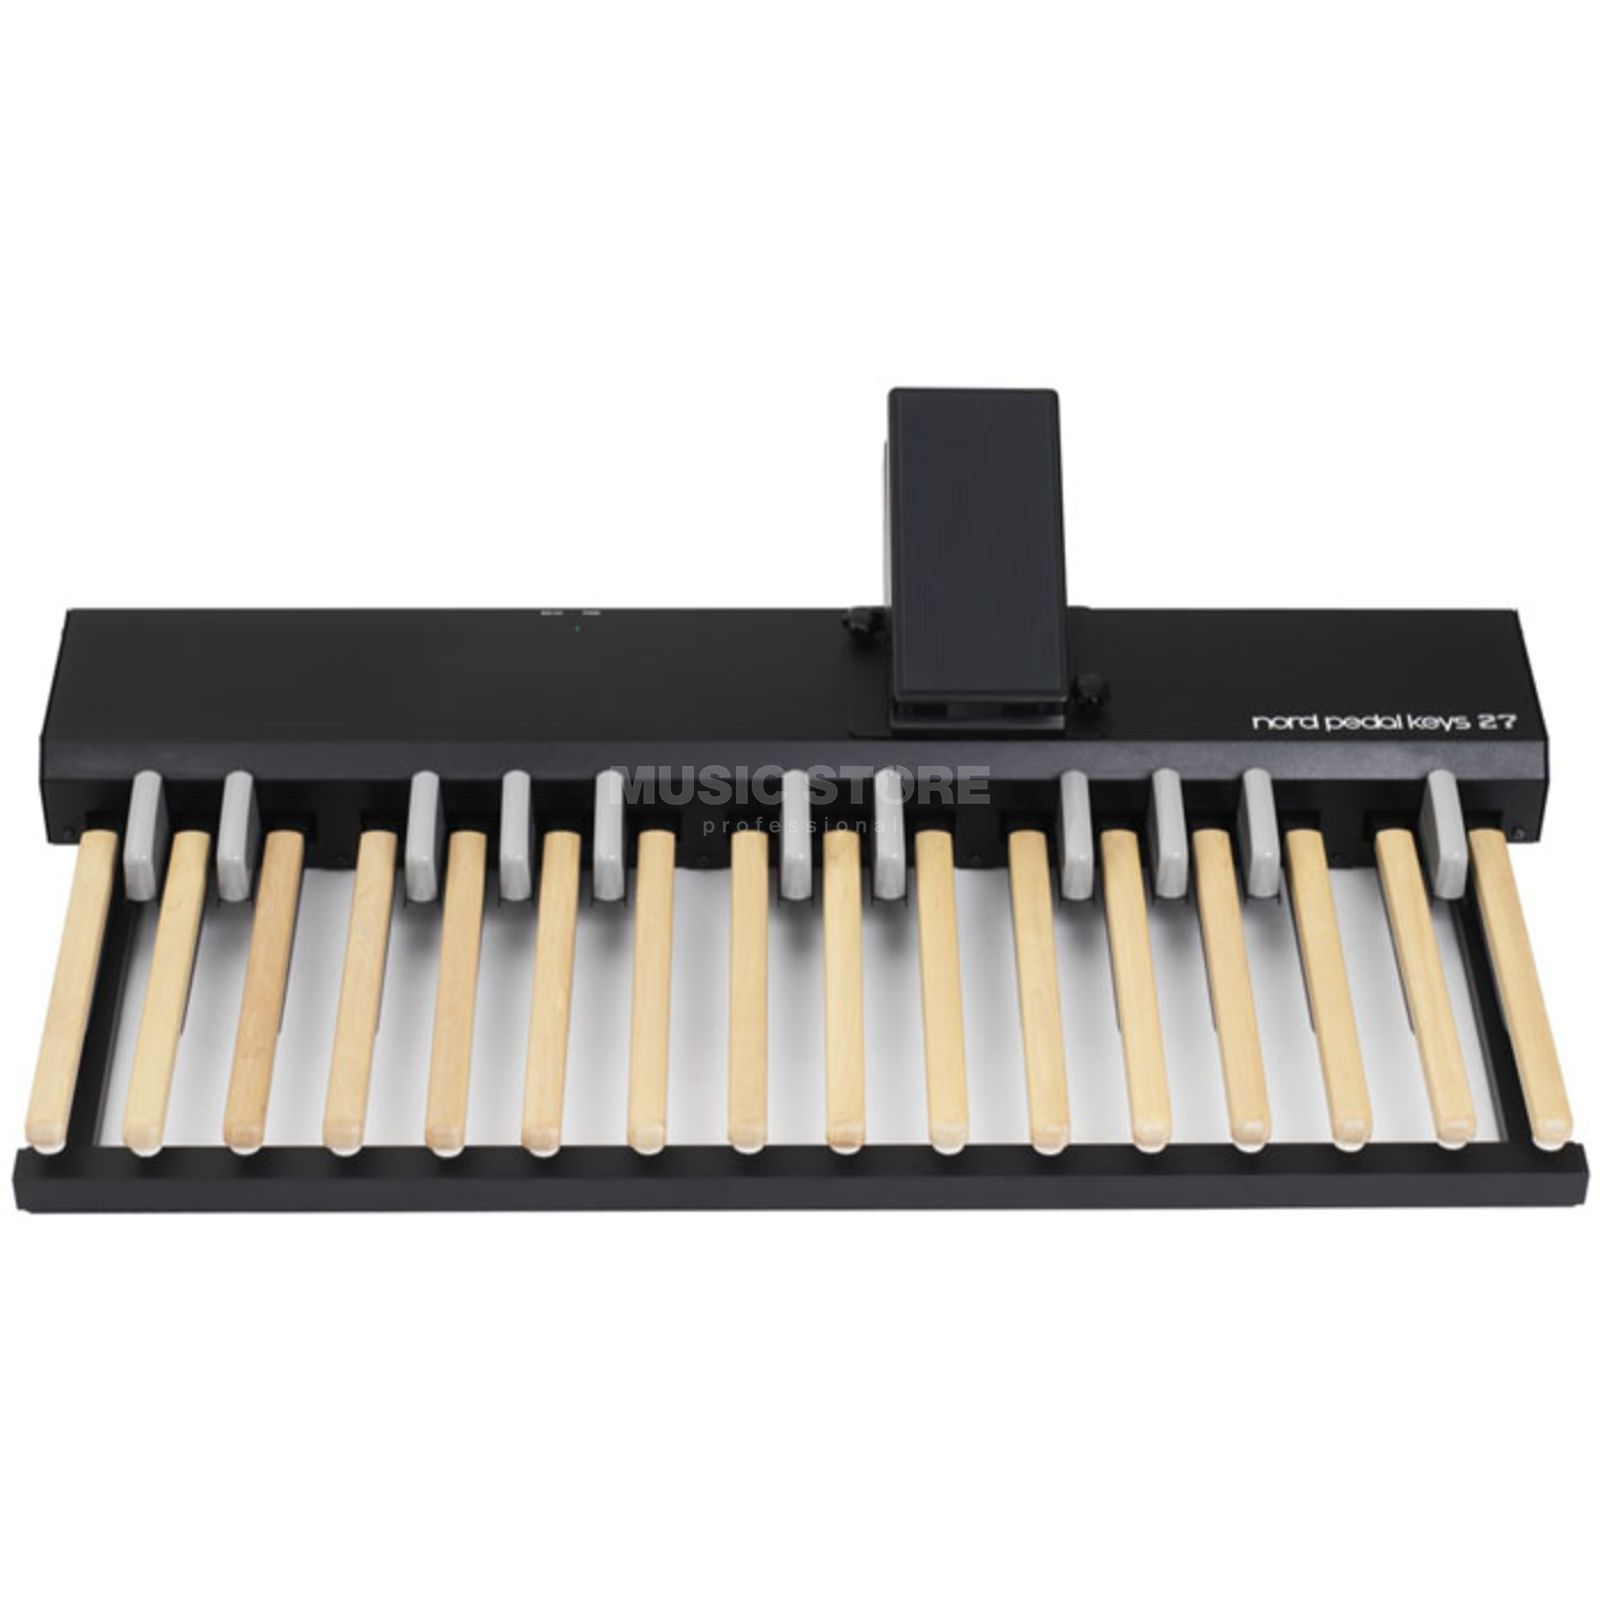 Clavia Nord Pedal Keys 27 Pedal Board with Swell Pedal Produktbillede